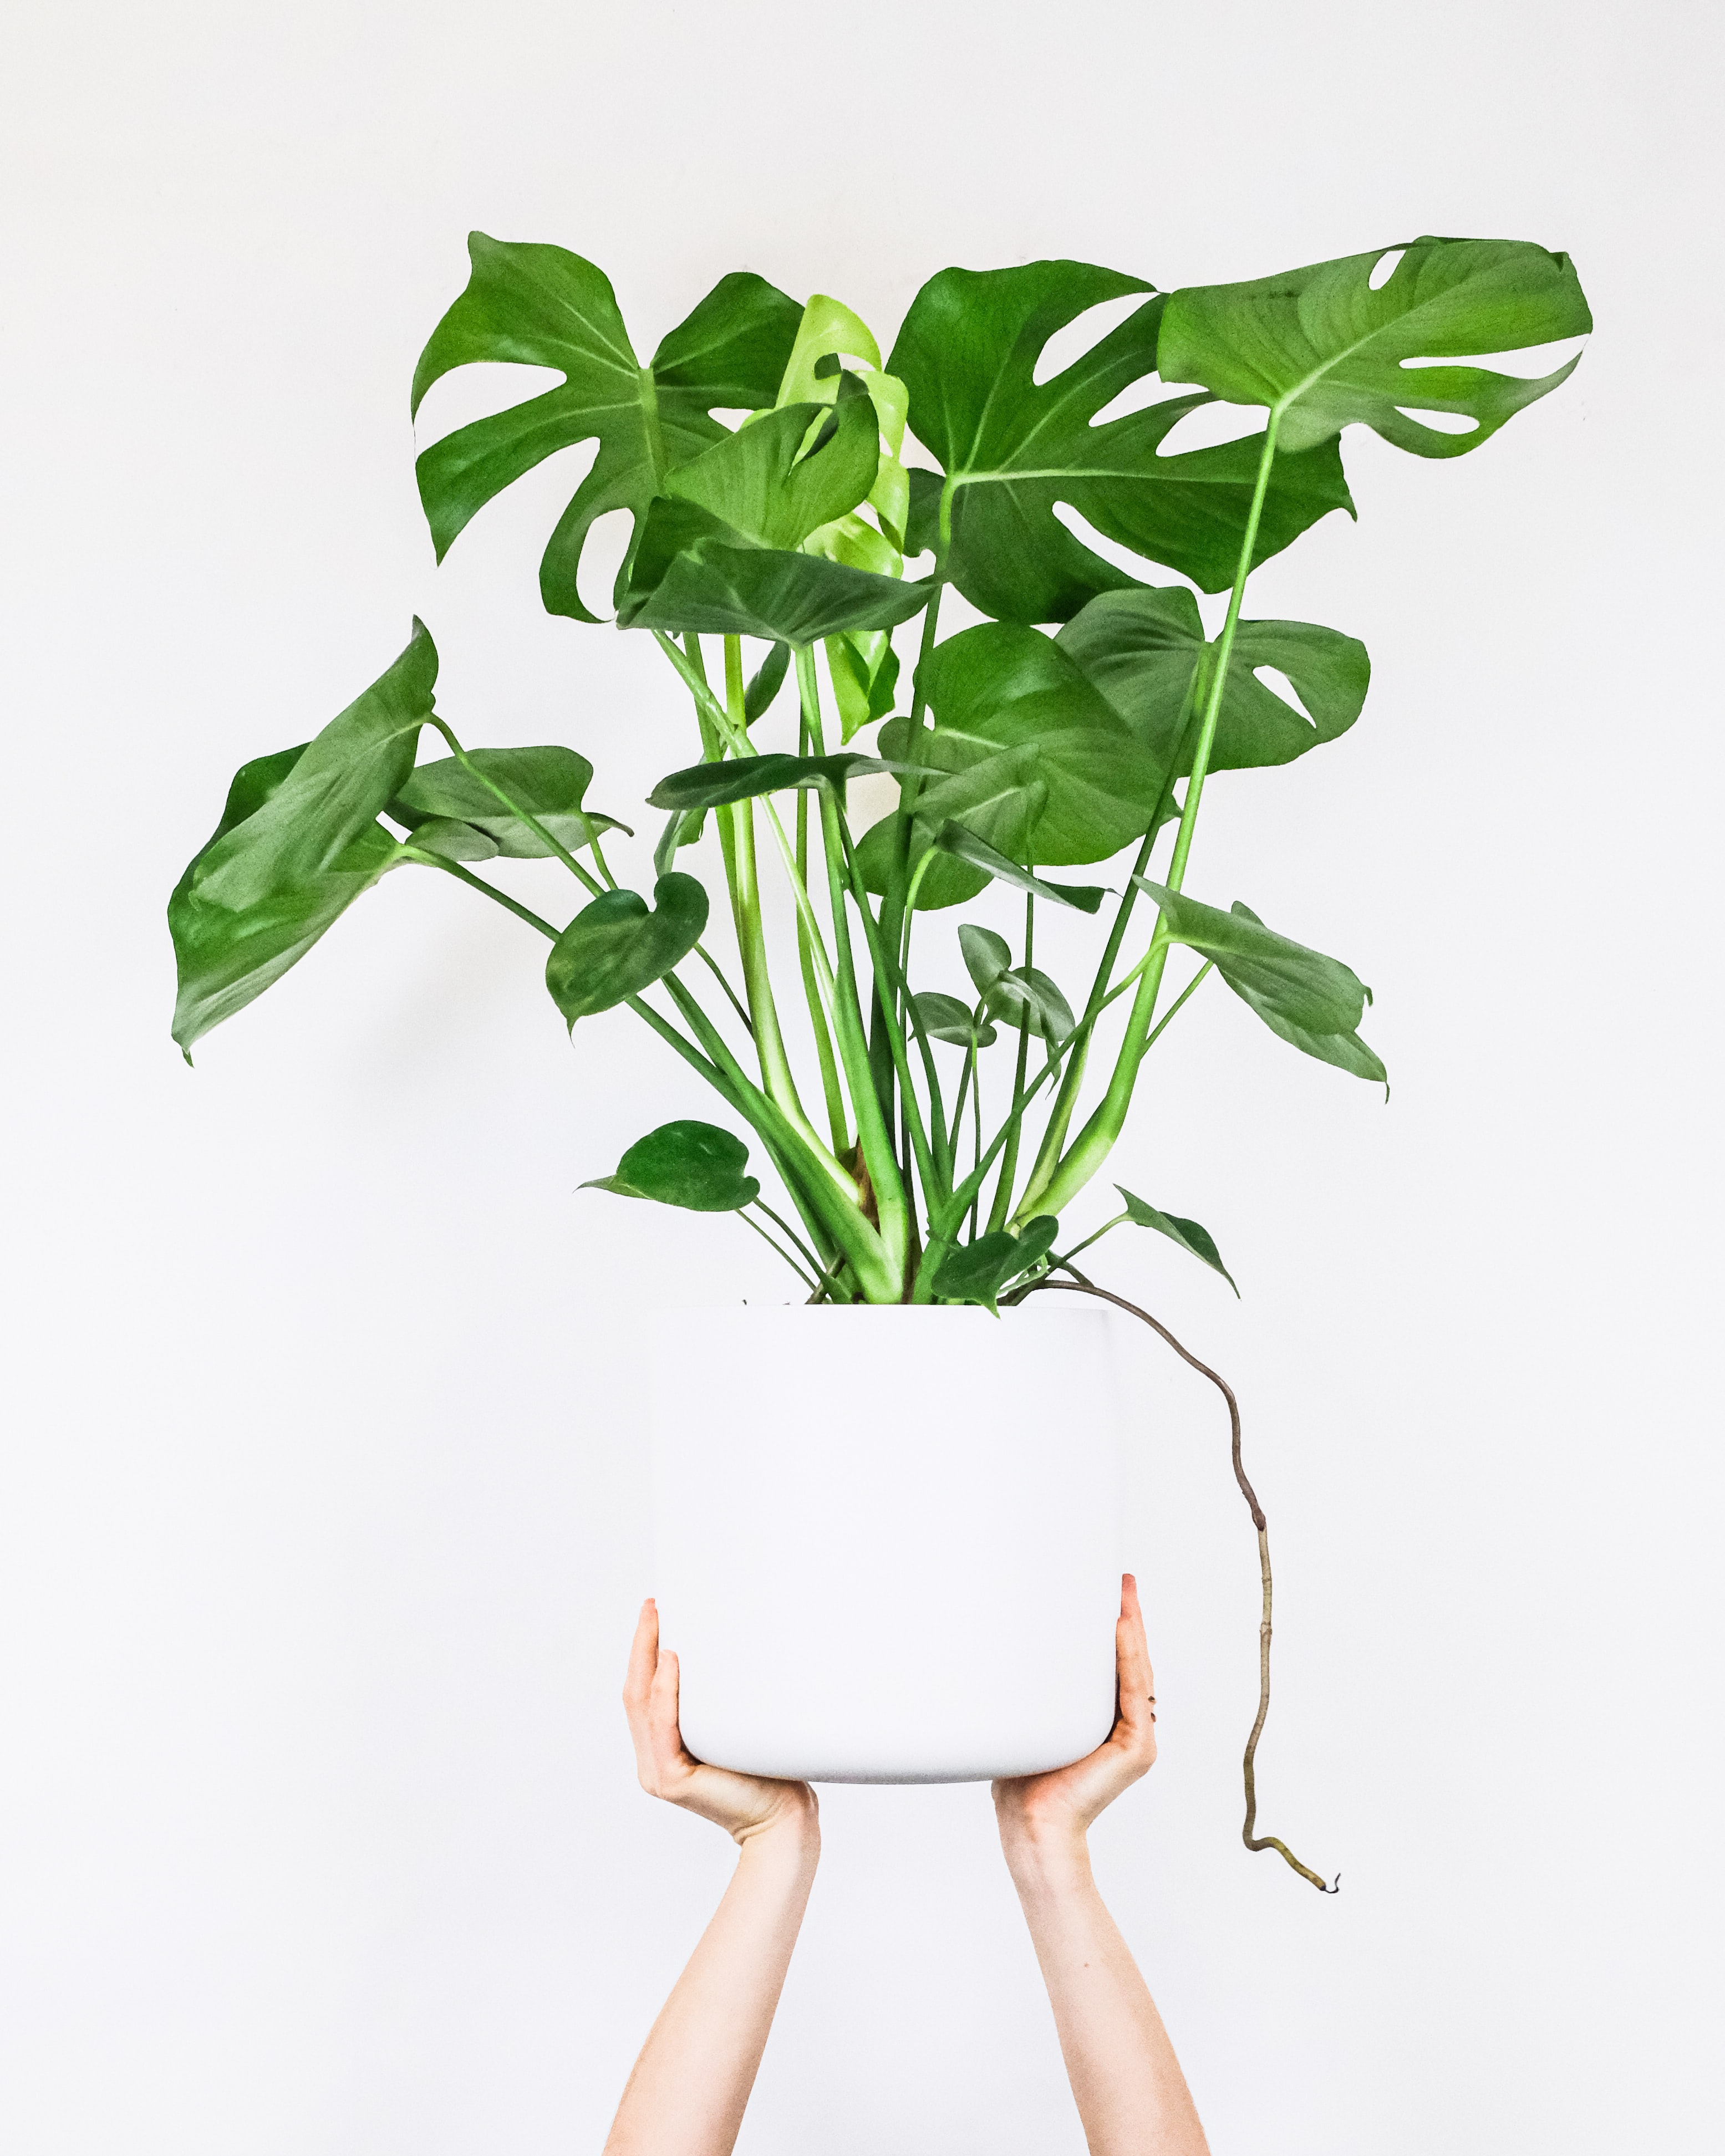 Monstera Deliciosa Houseplant is an Indoor Charm